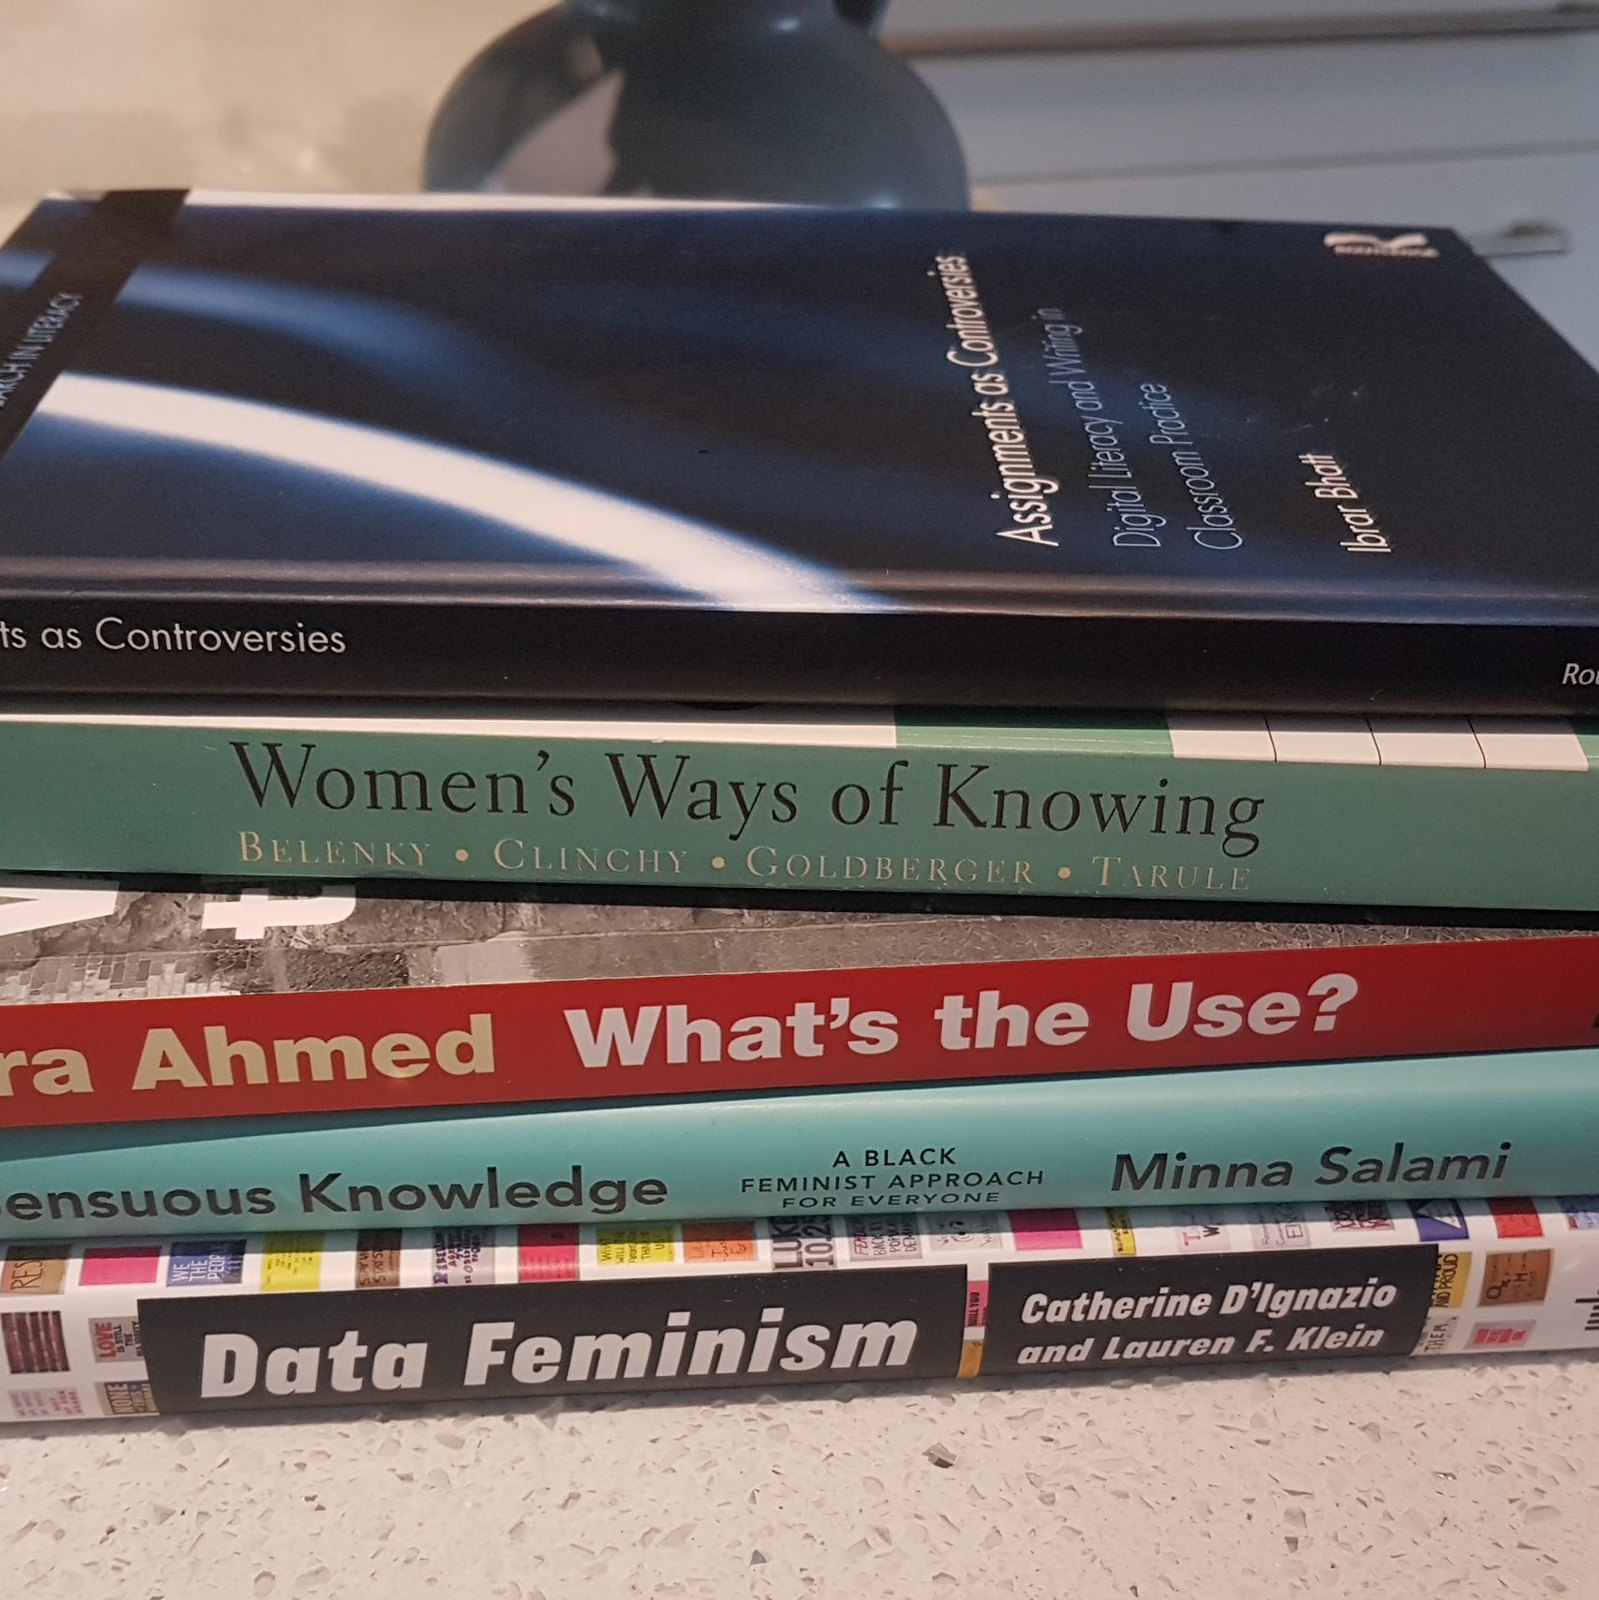 Feminist and other books